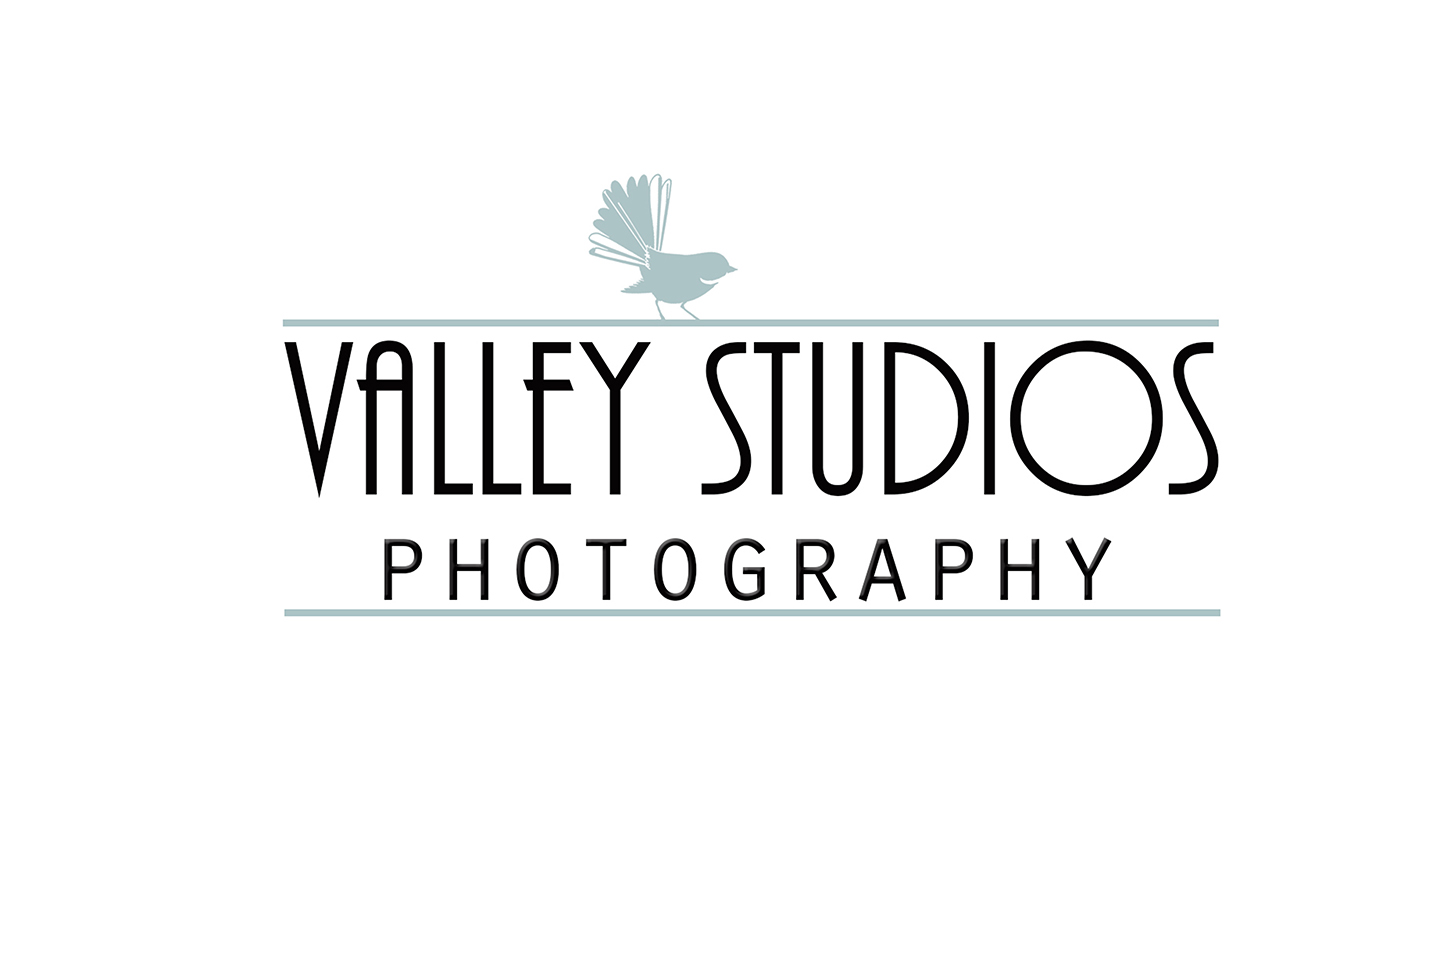 Valley Studios Photography